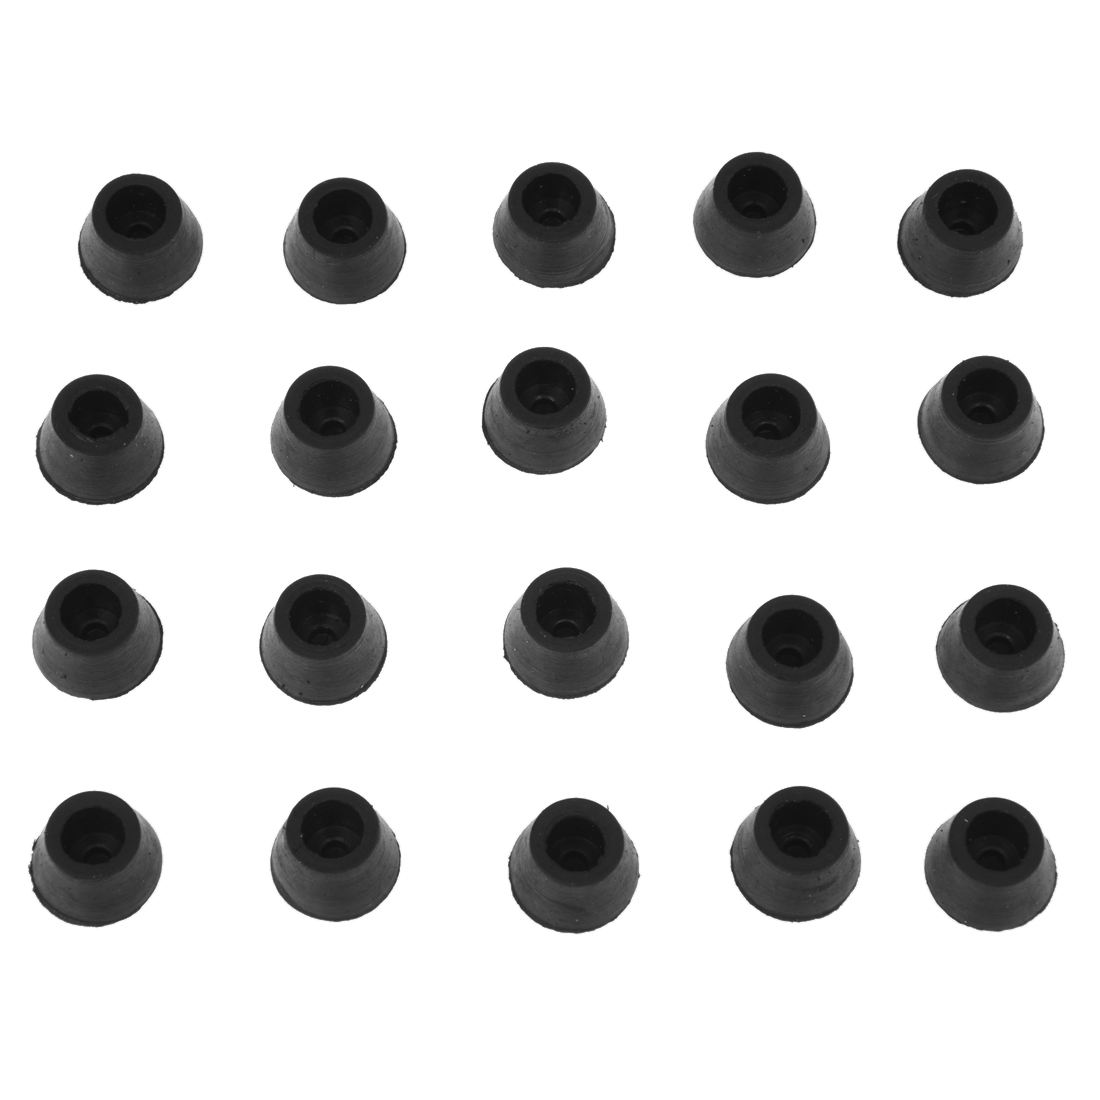 20PCS Black Chair Couch Table Rubber Furniture Leg End Caps 16mm Dia 20PCS Black Chair Couch Table Rubber Furniture Leg End Caps 16mm Dia